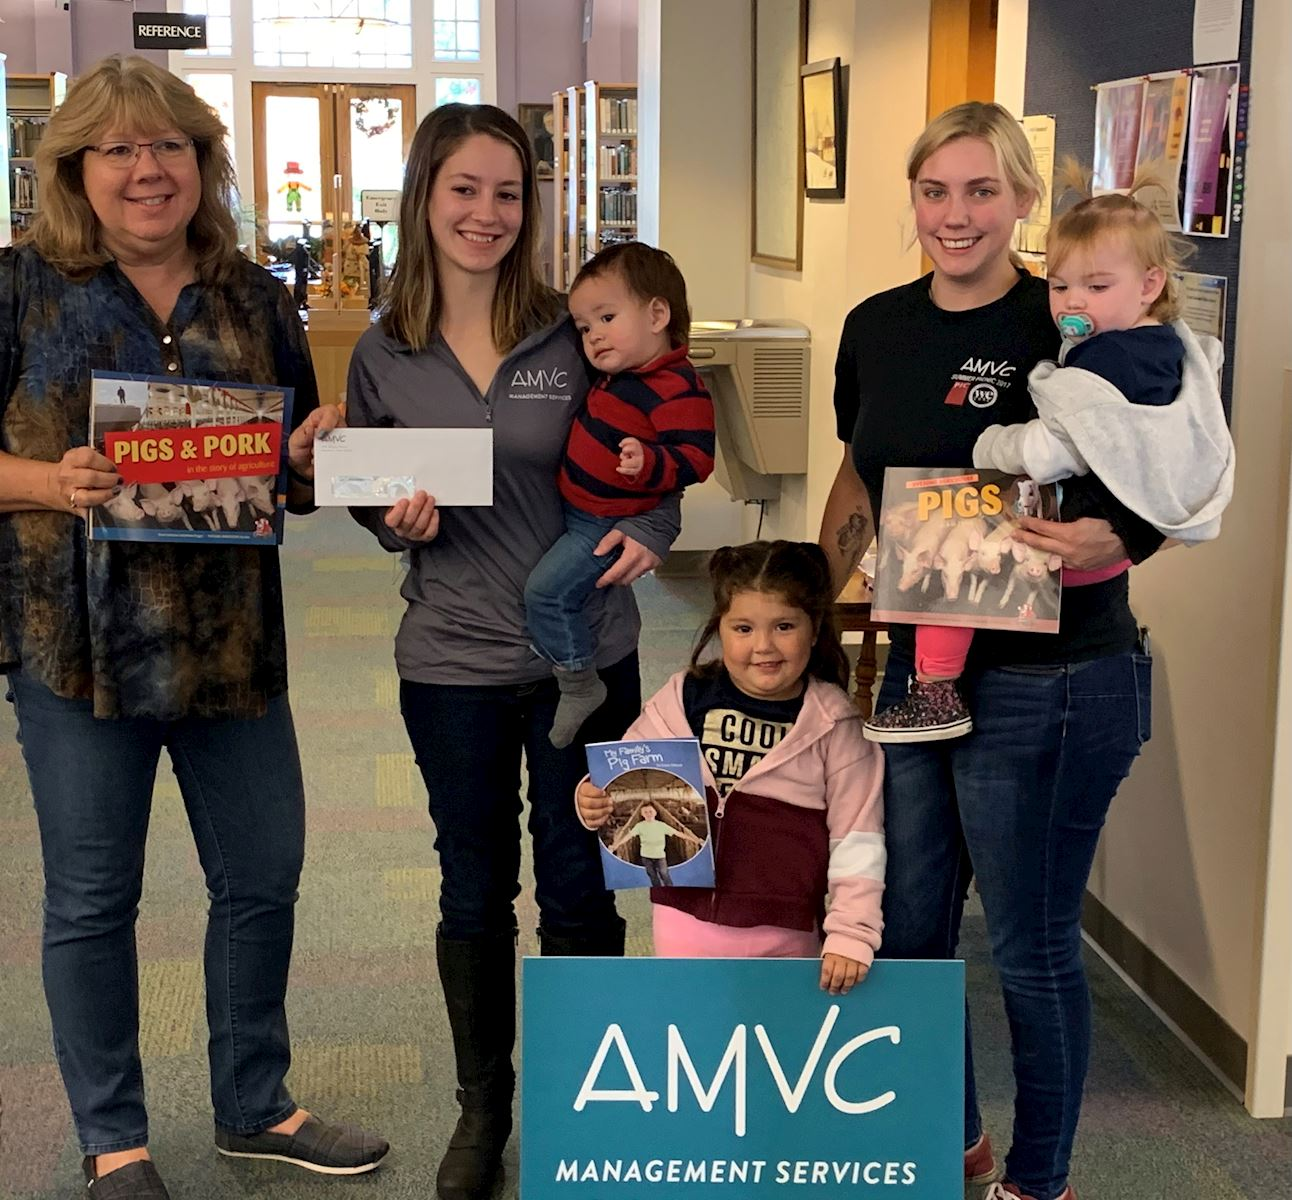 AMVC celebrates National Pork Month and National Book Month with local libraries